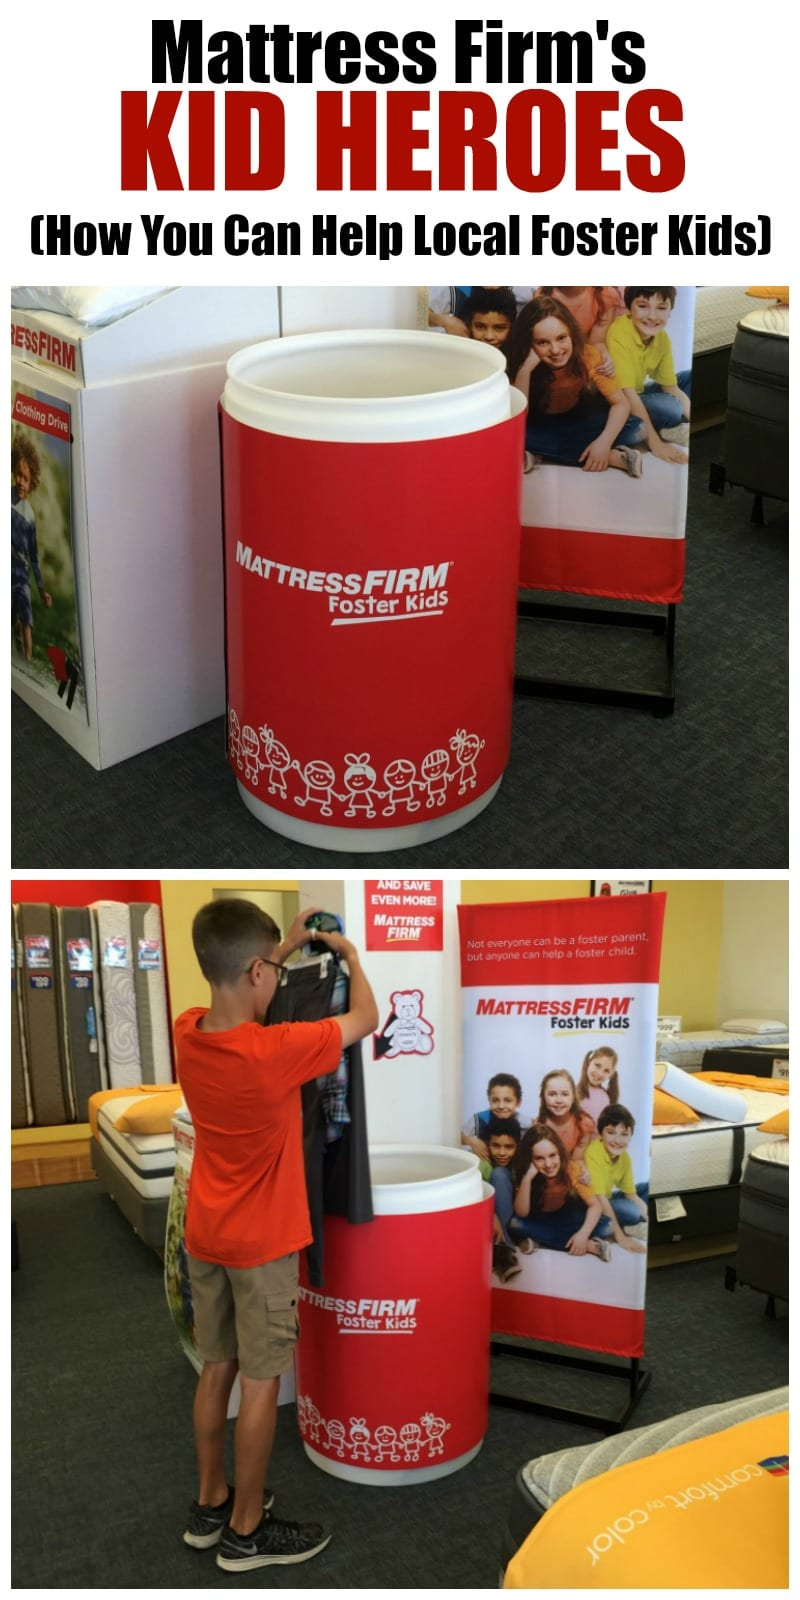 Make a difference by donating new clothing items to your local Mattress Firm store in support of their Foster Kids Program. Get your kids involved by entering them into their Kid Heroes contest. Find out all of the info on www.momfabulous.com. AD